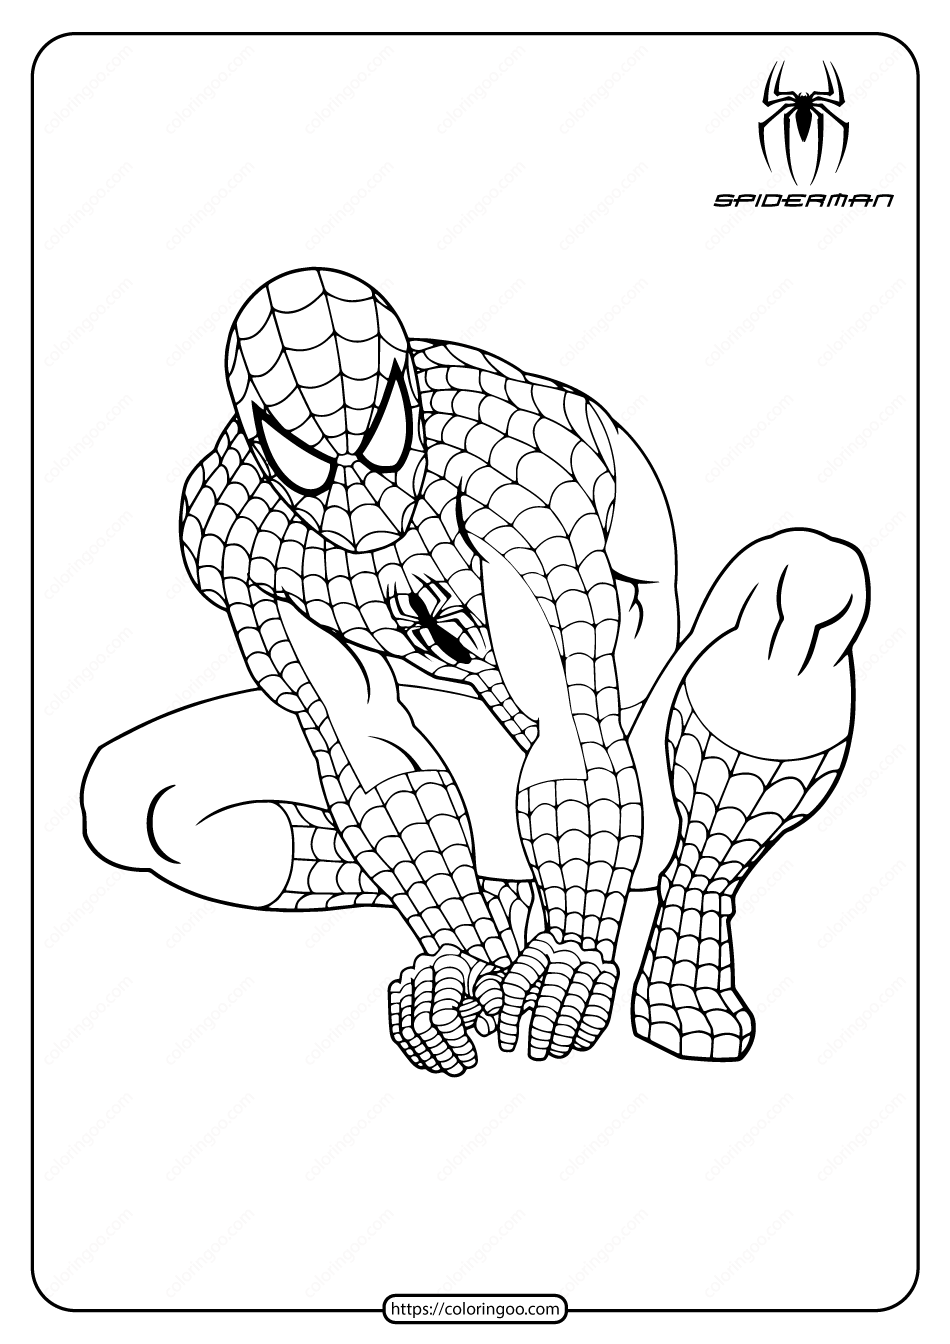 Marvel Hero Spiderman Pdf Coloring Pages Spiderman Coloring Superhero Coloring Pages Hero Spiderman